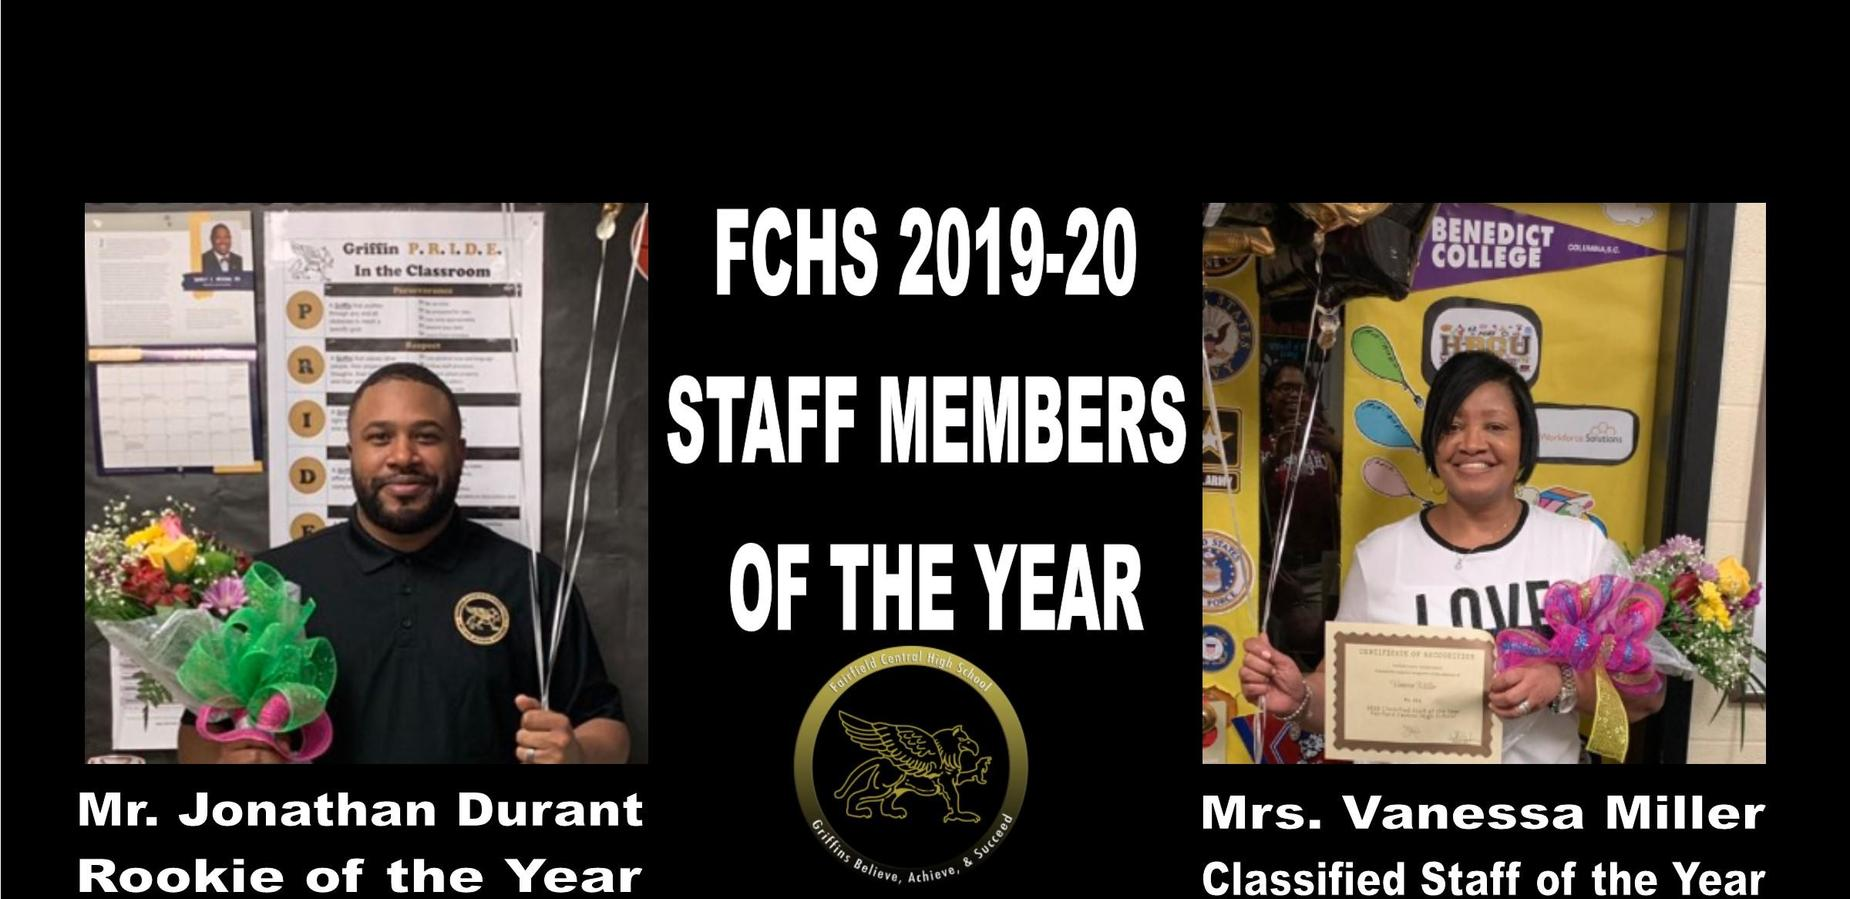 FCHS 2019-20 Staff Members of the year Jonathan Durant [Rookie of the Year] and Vanessa Miller [Classified Staff of the year]